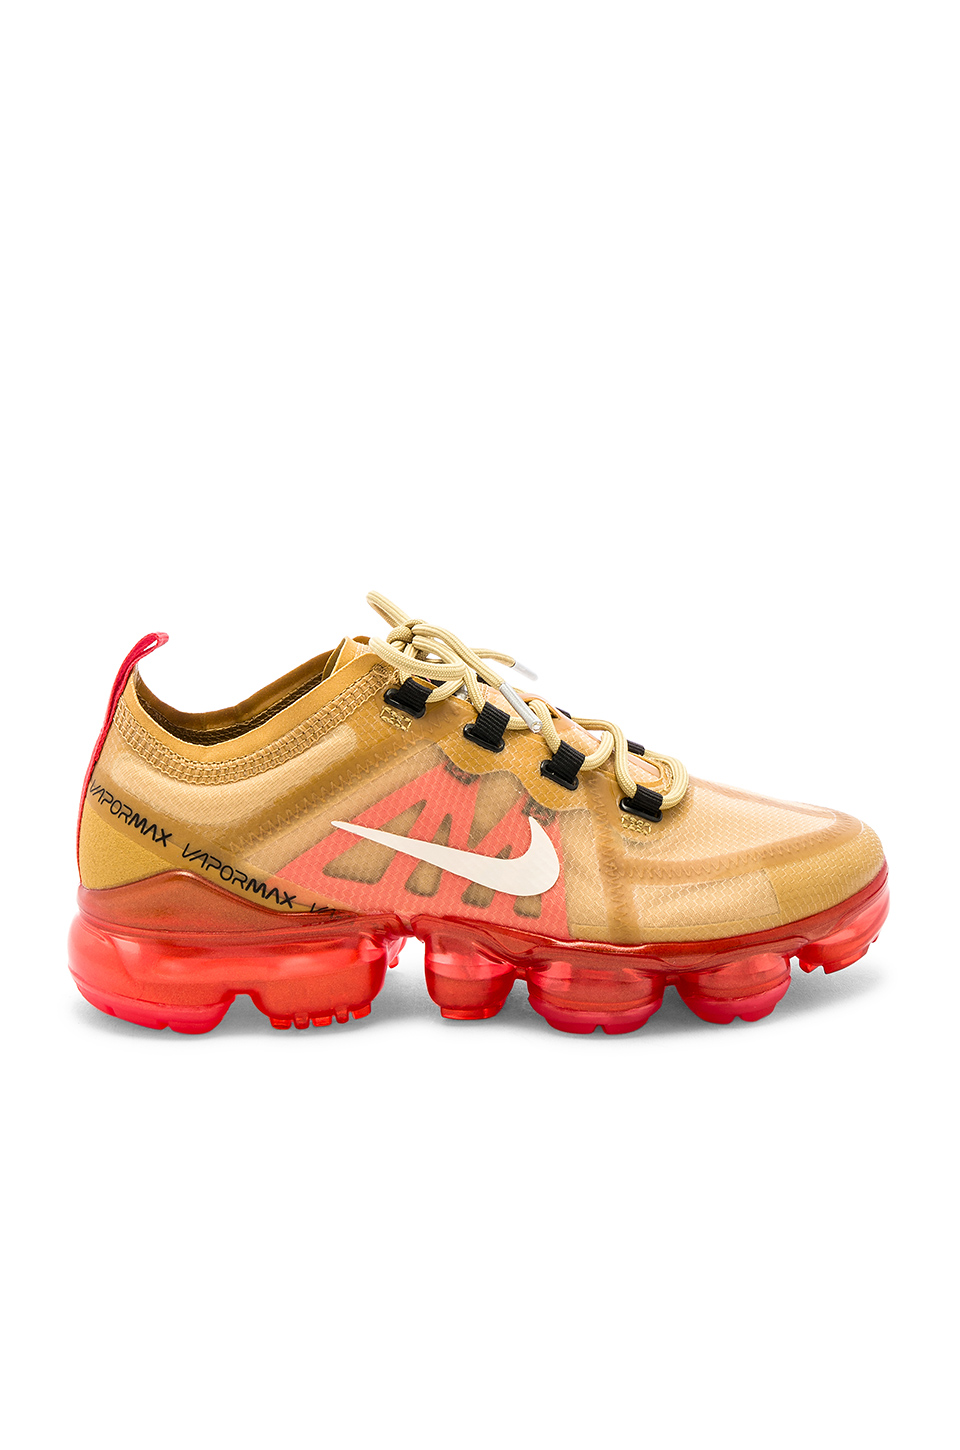 8995897b Nike Air Vapormax 2019 Ripstop And Mesh Sneakers In Gold | ModeSens